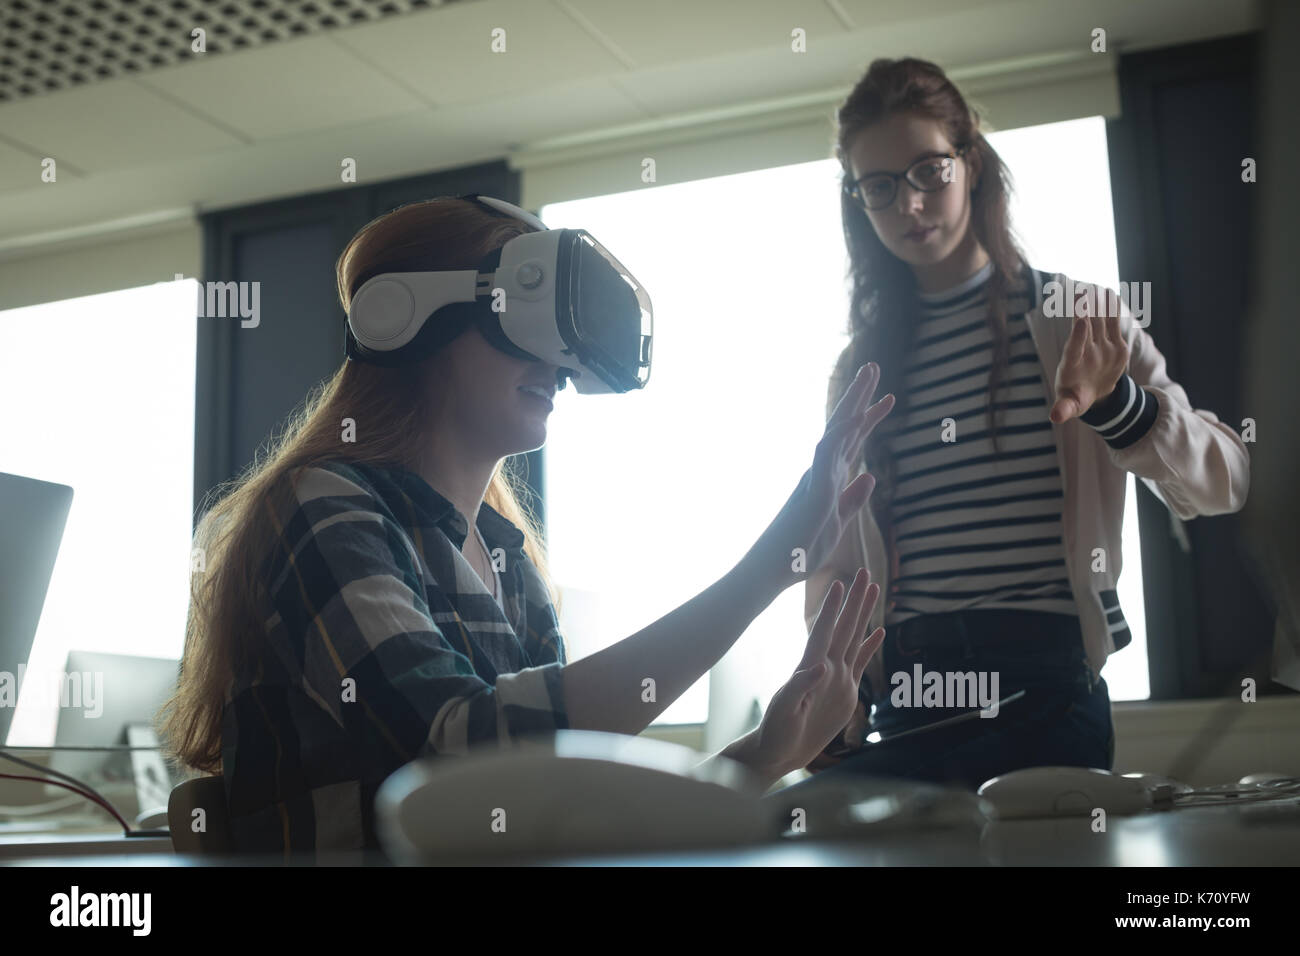 Friends experiencing virtual reality headset in college - Stock Image